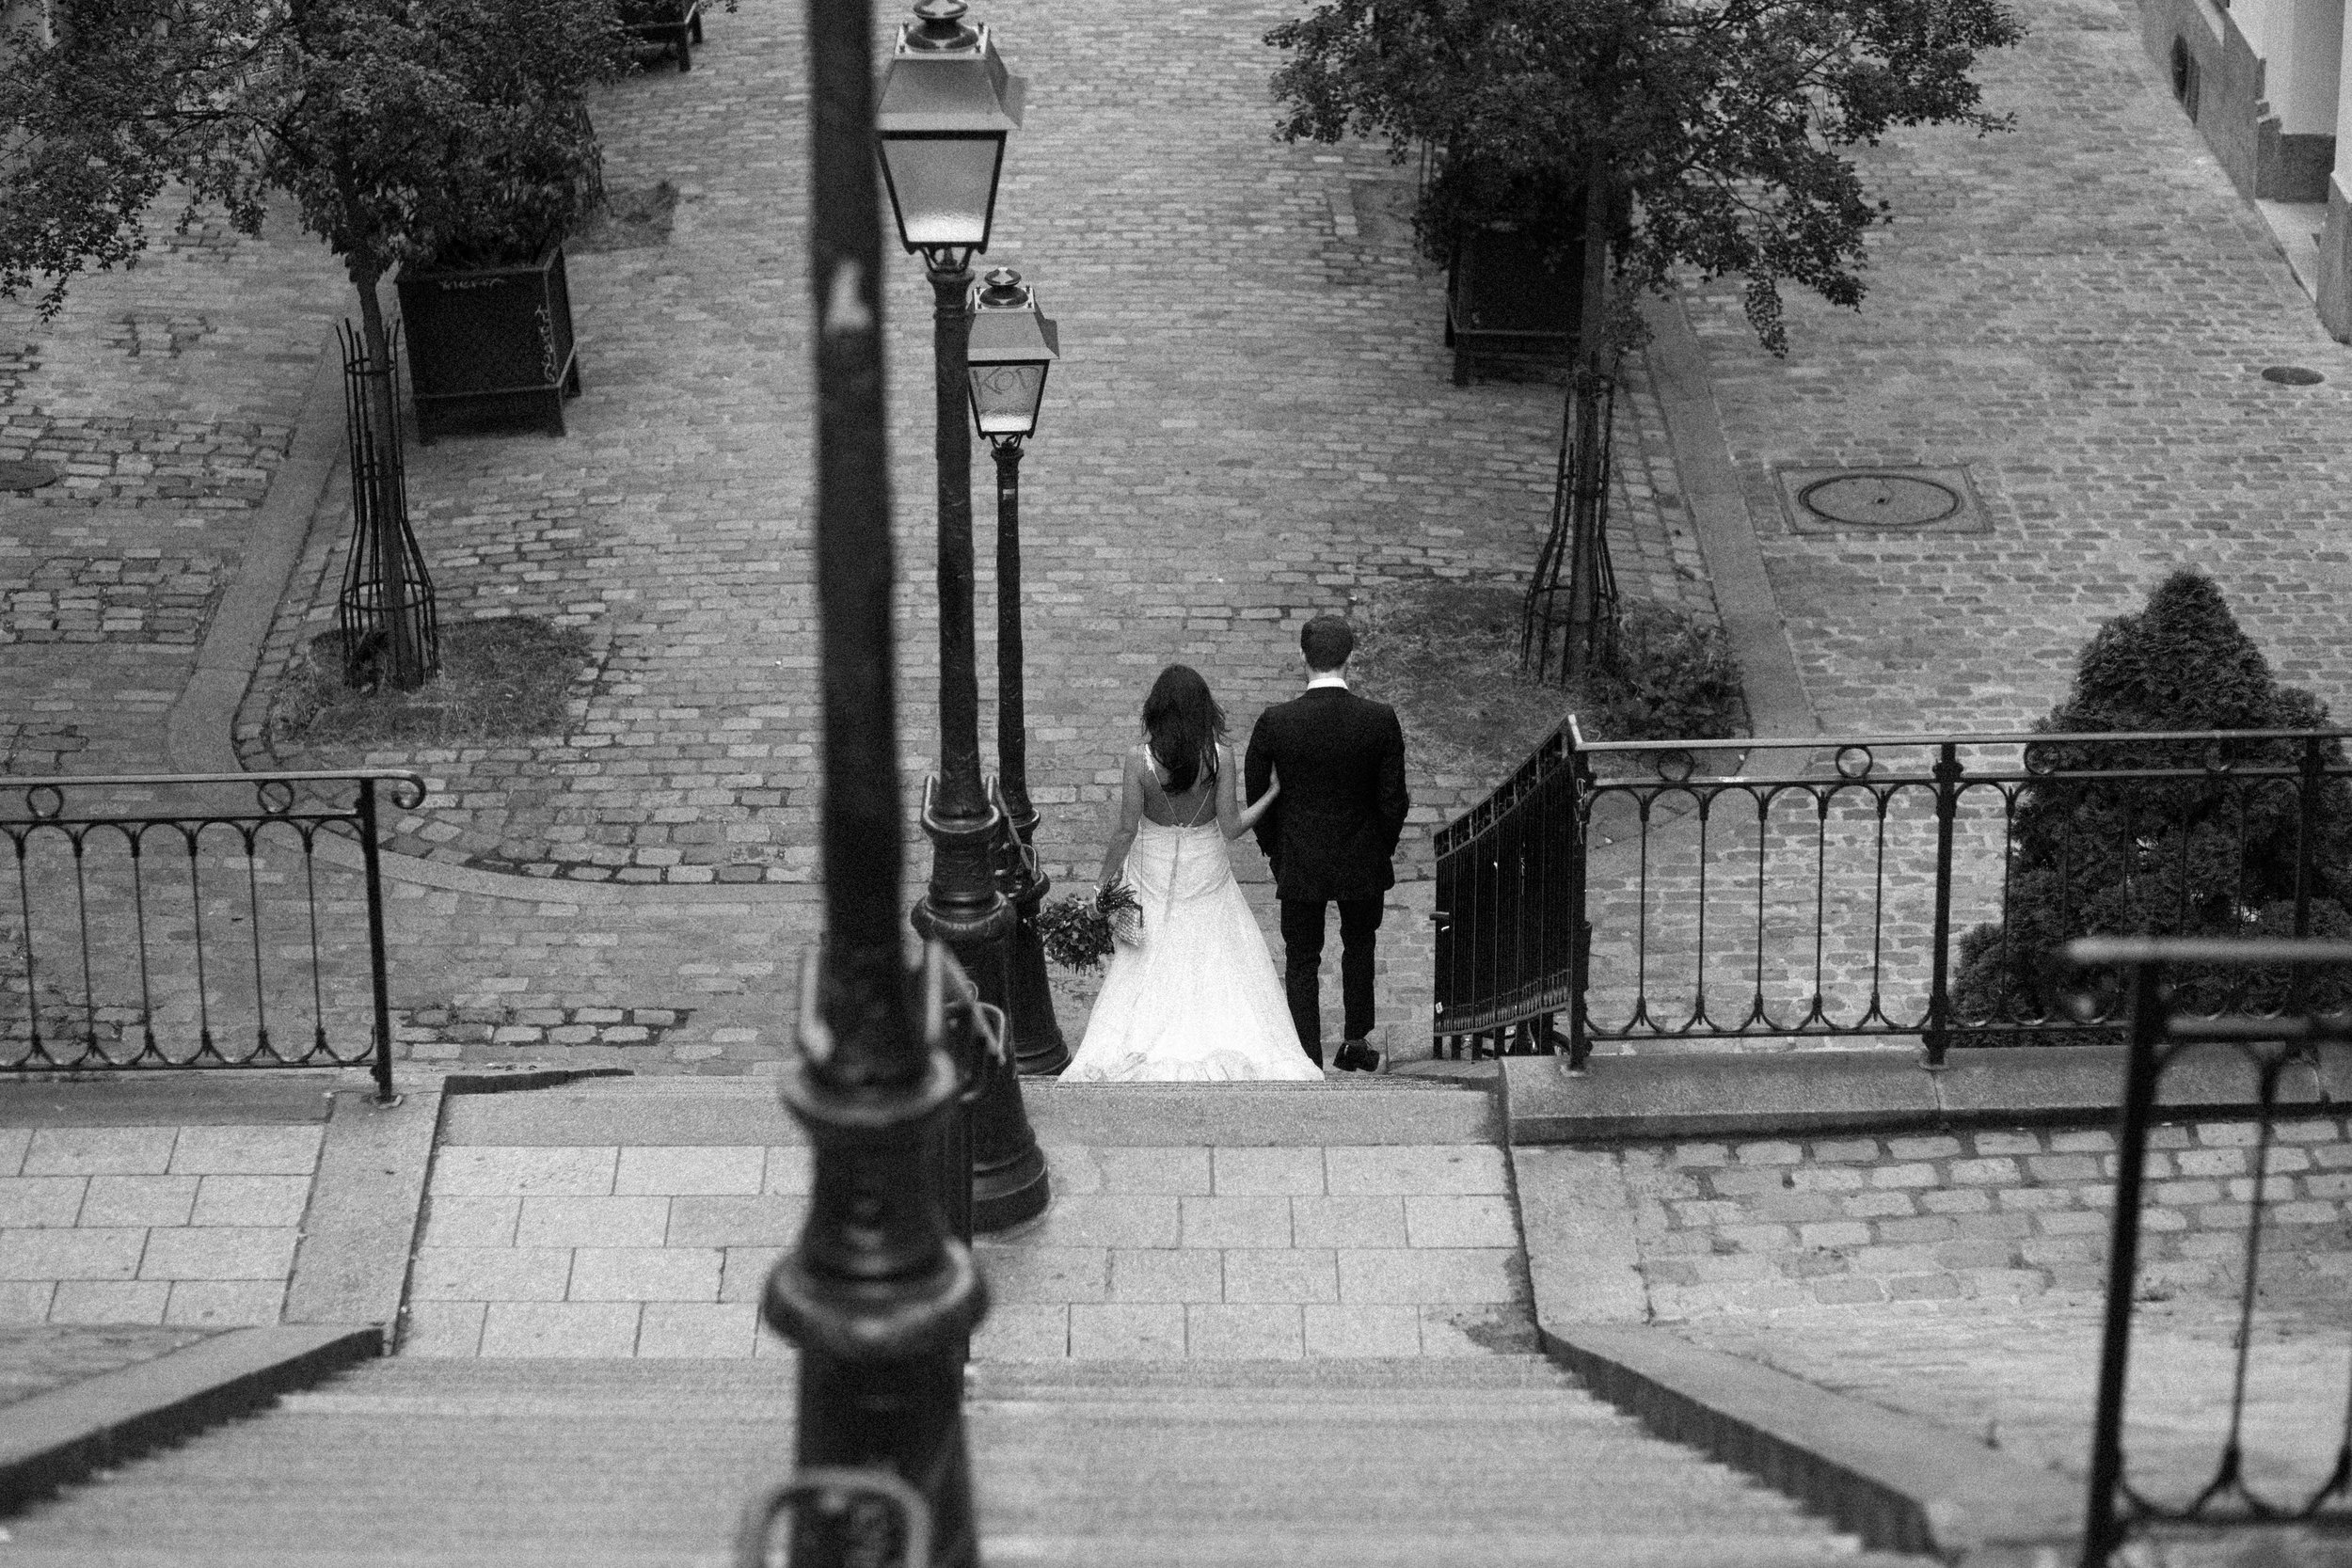 paris wedding photographer craig george hannah and mitch elopment-177.jpg